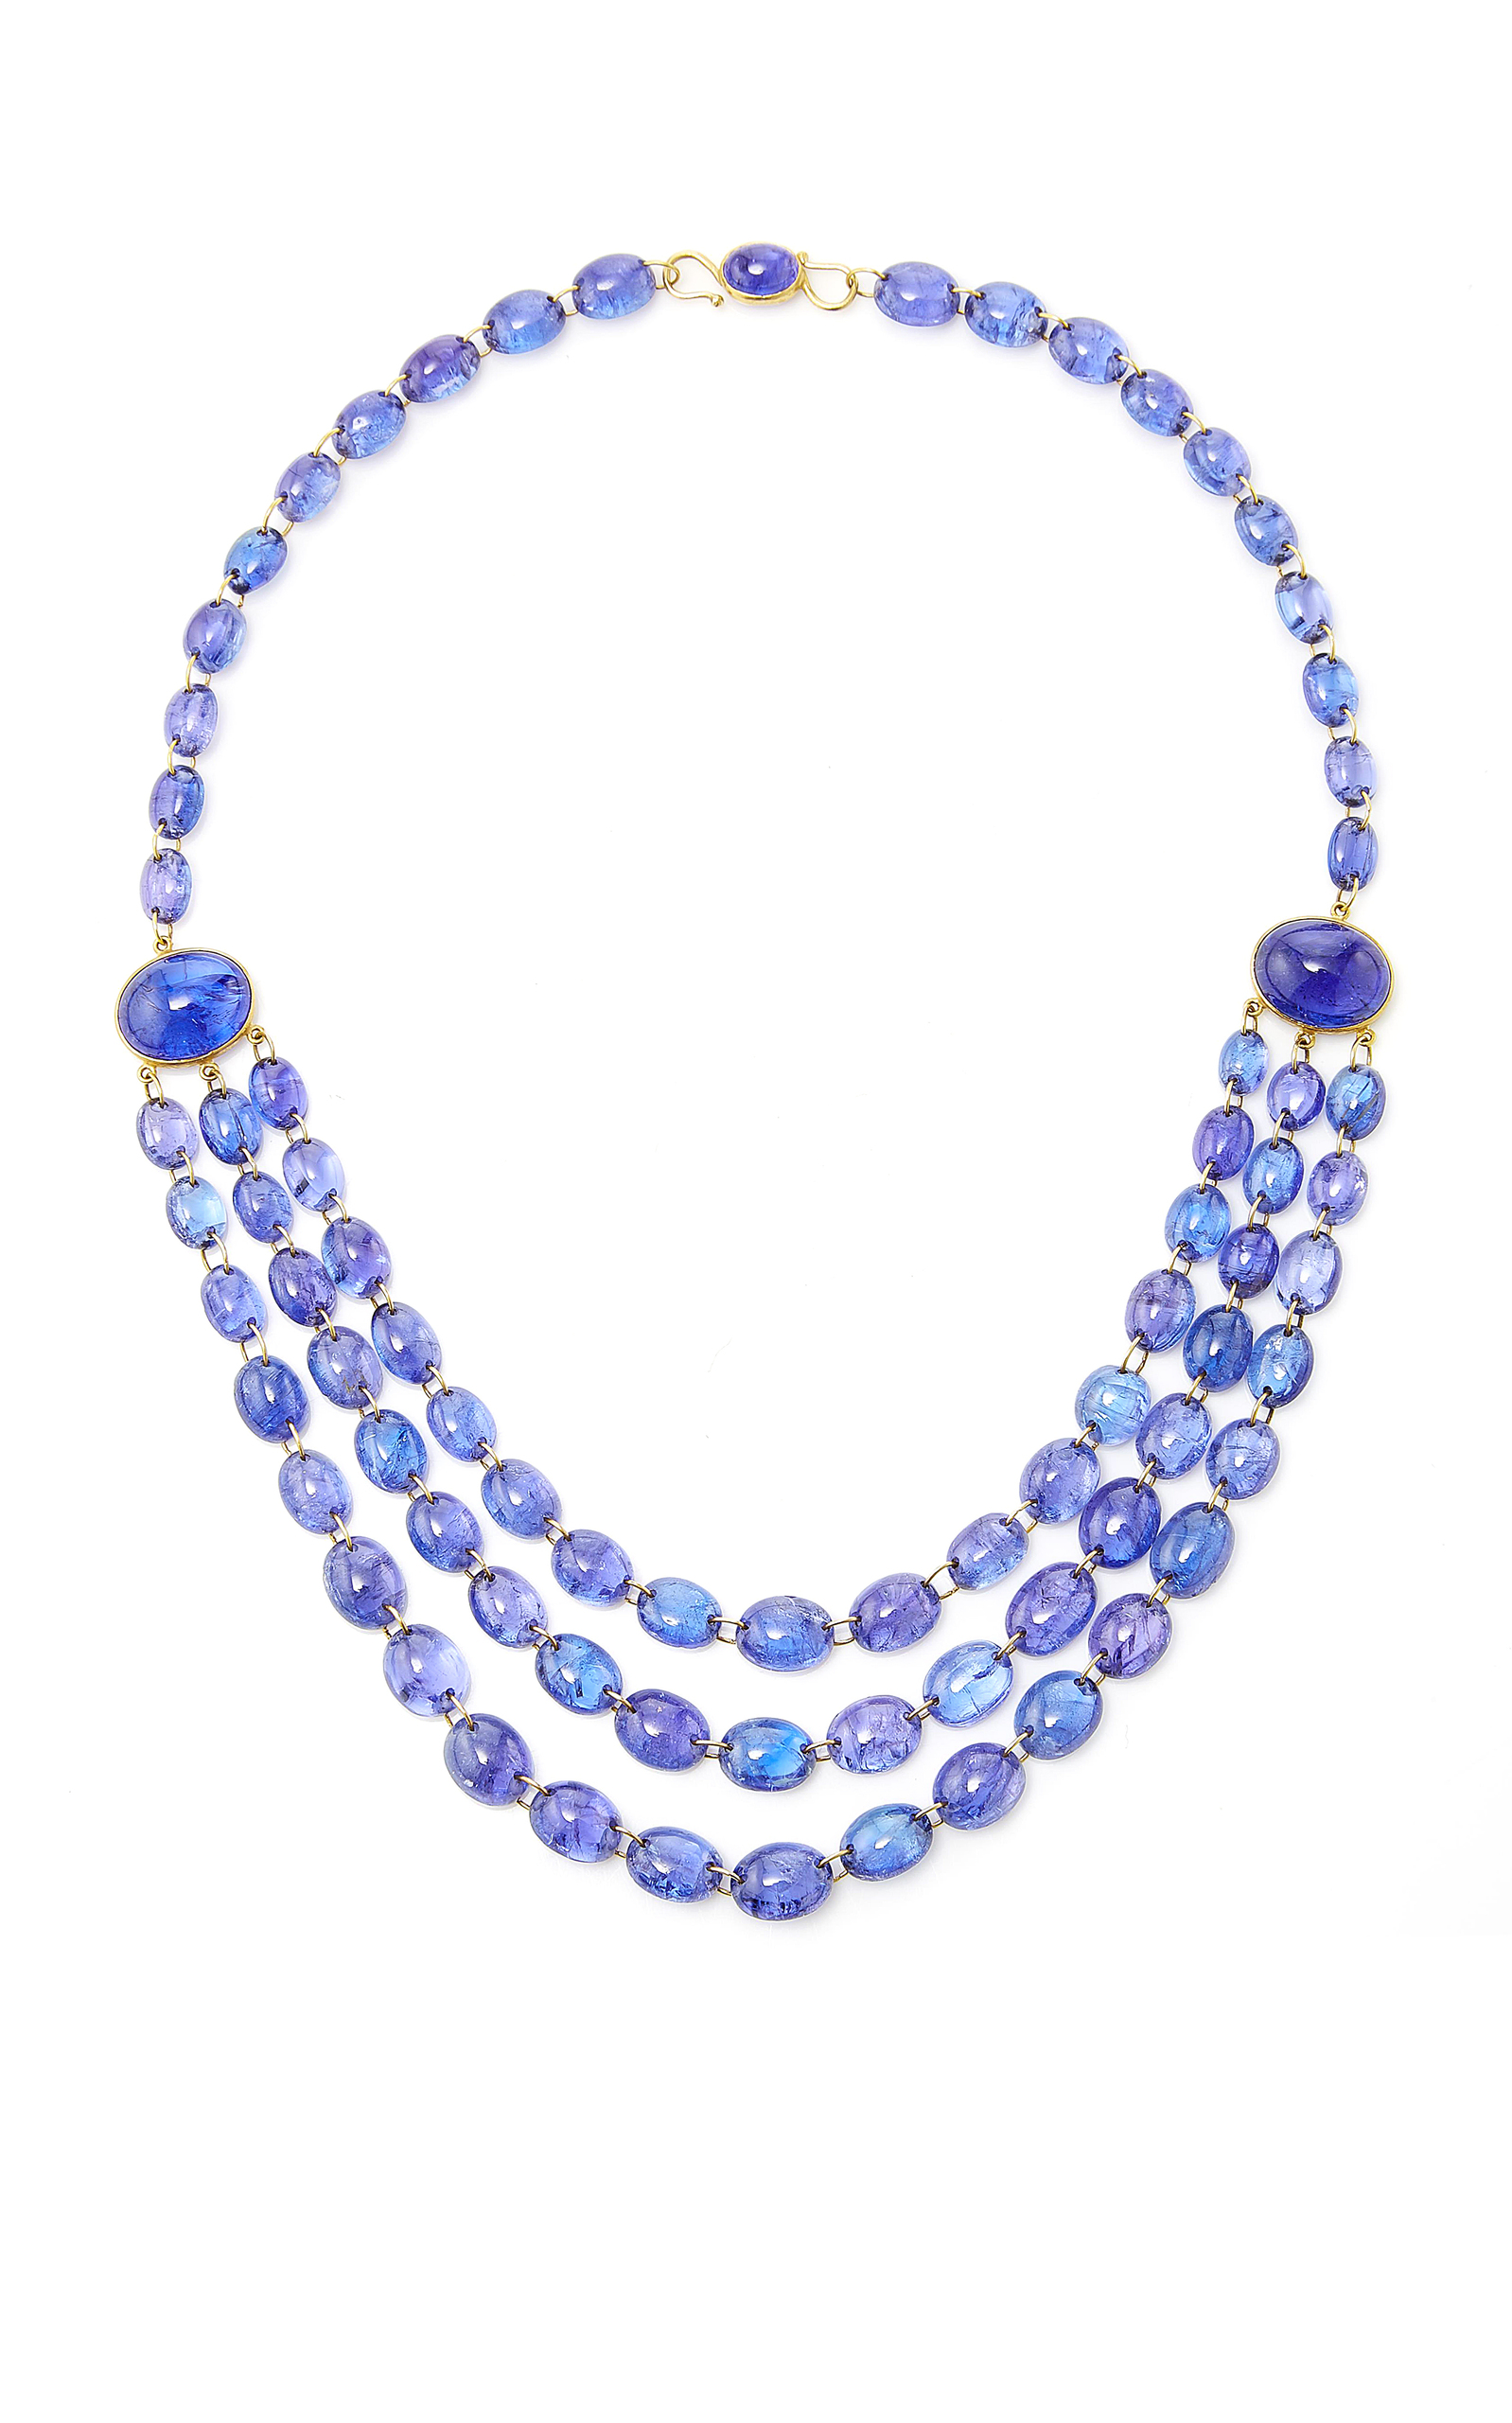 rondelle degraded faceted stone stones and buy en strands necklace tanzanite precious fine